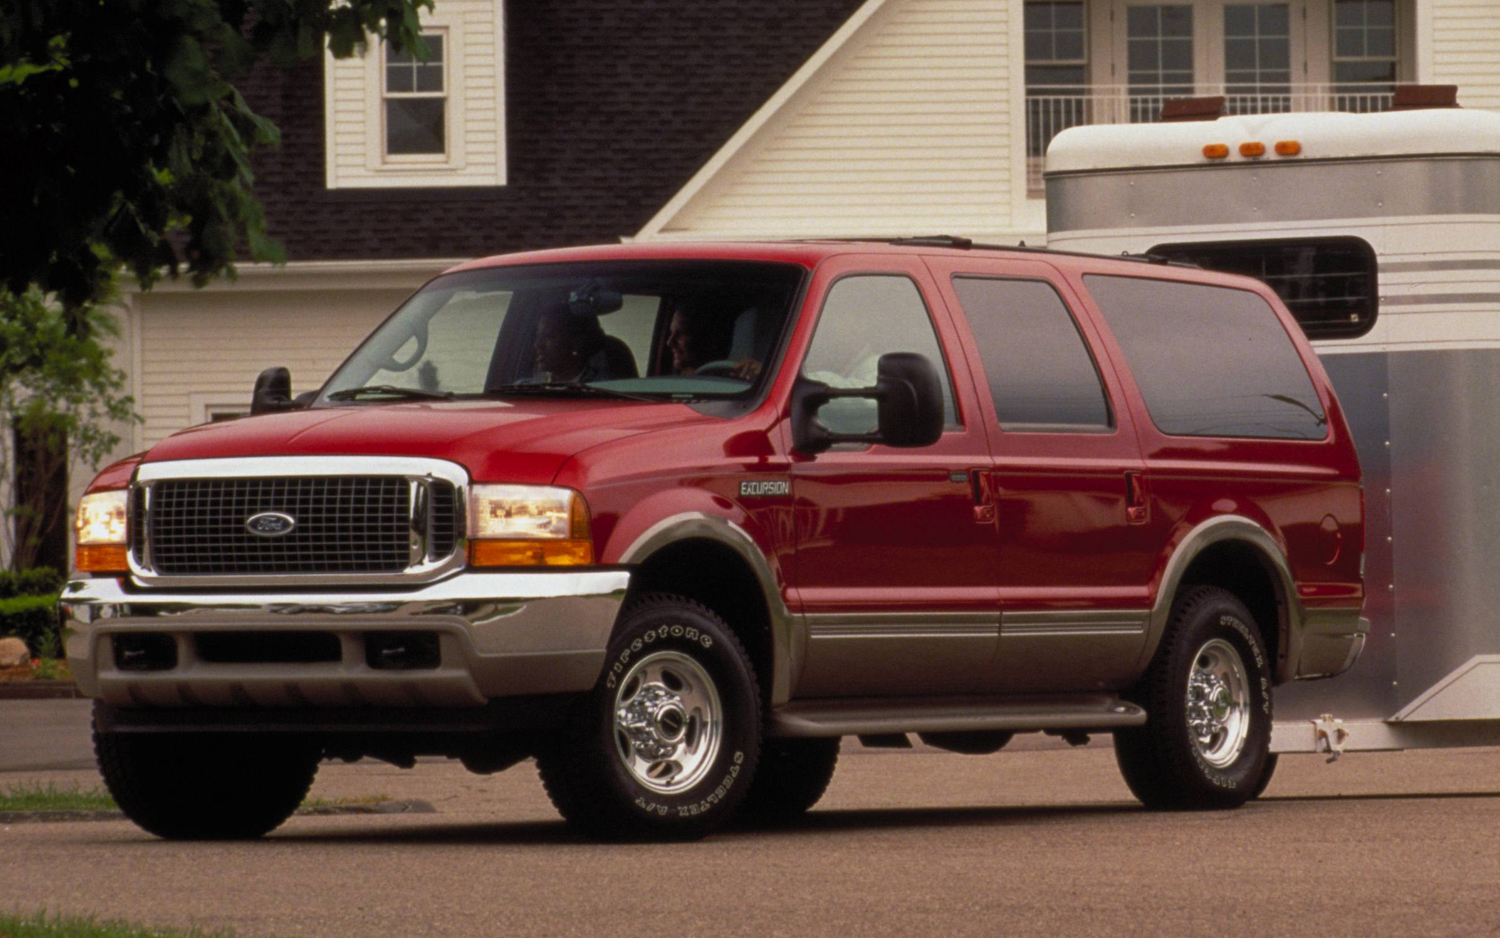 Ford excursion 2000 1 ford excursion 2000 1